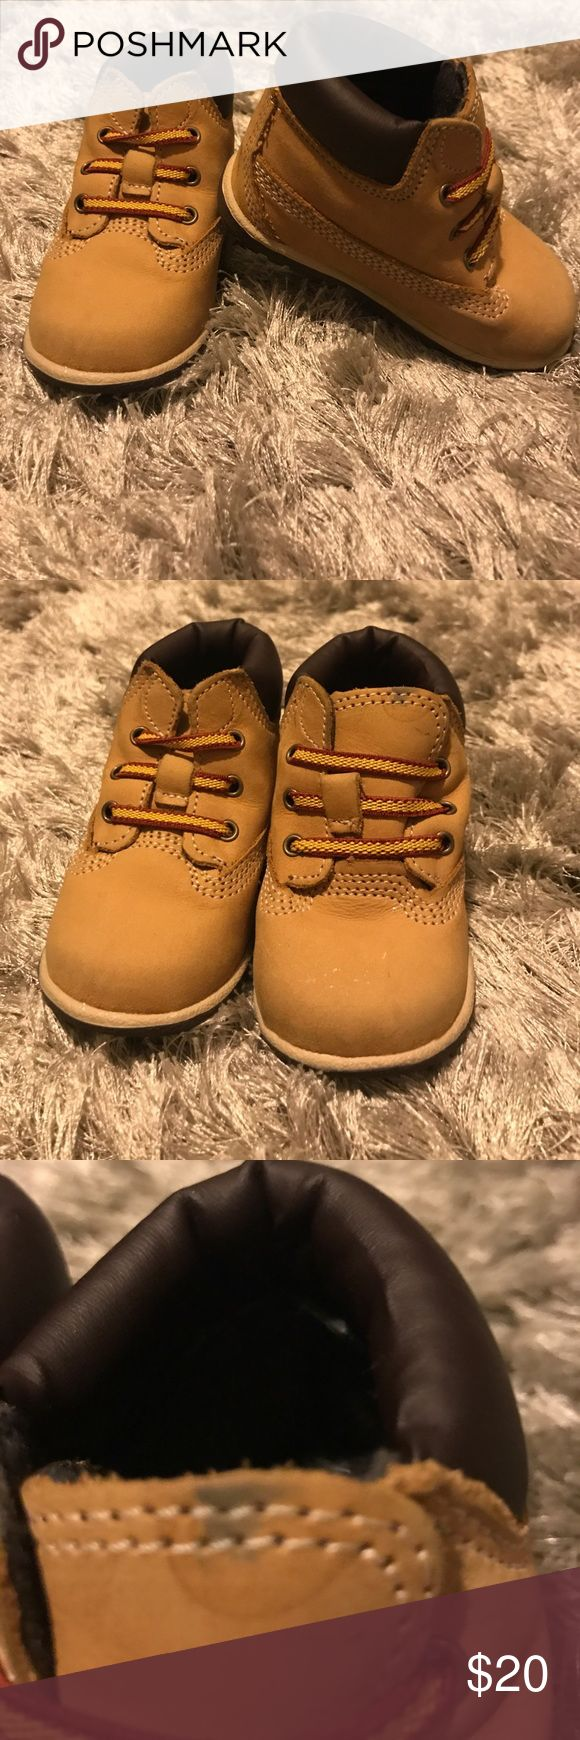 Baby timberlands Baby timberlands. Good condition. Has one small spot. Comes with original box Timberland Shoes Boots